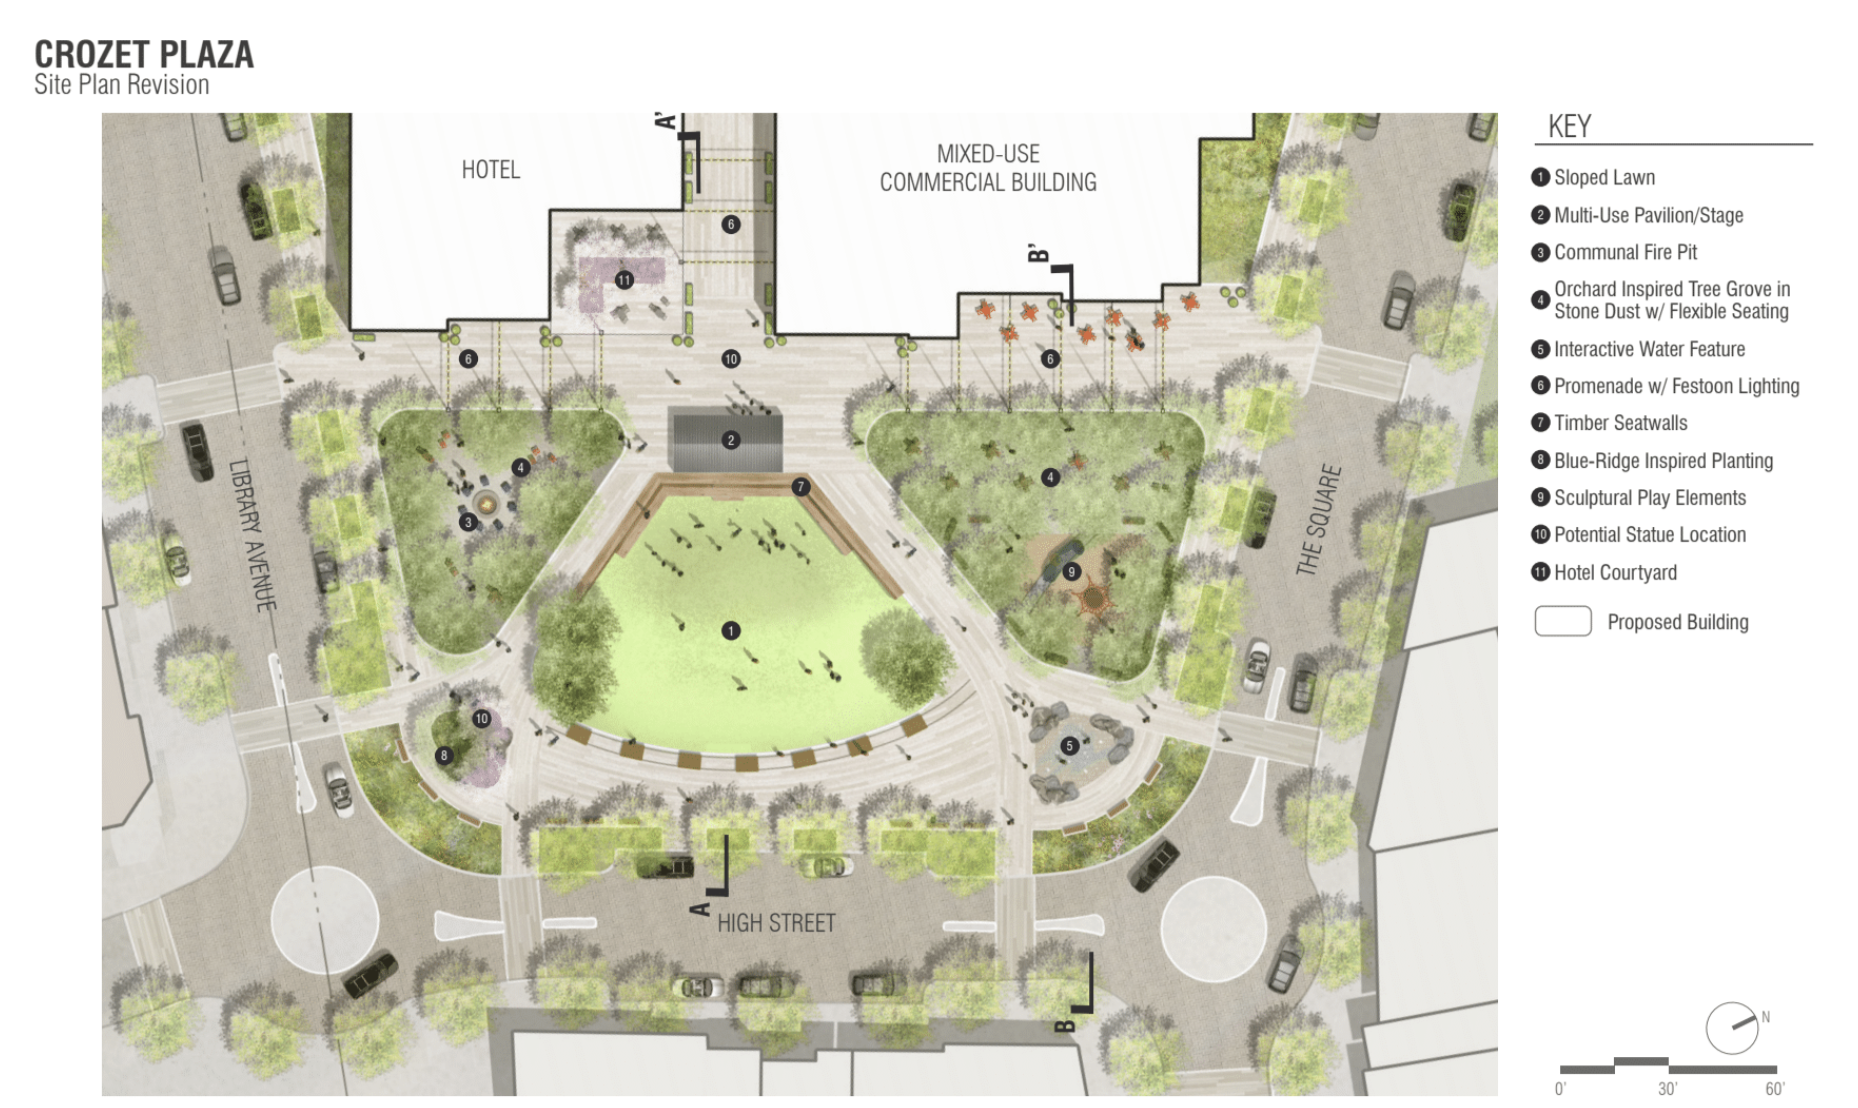 Picture of proposed Crozet Plaza site plan revision